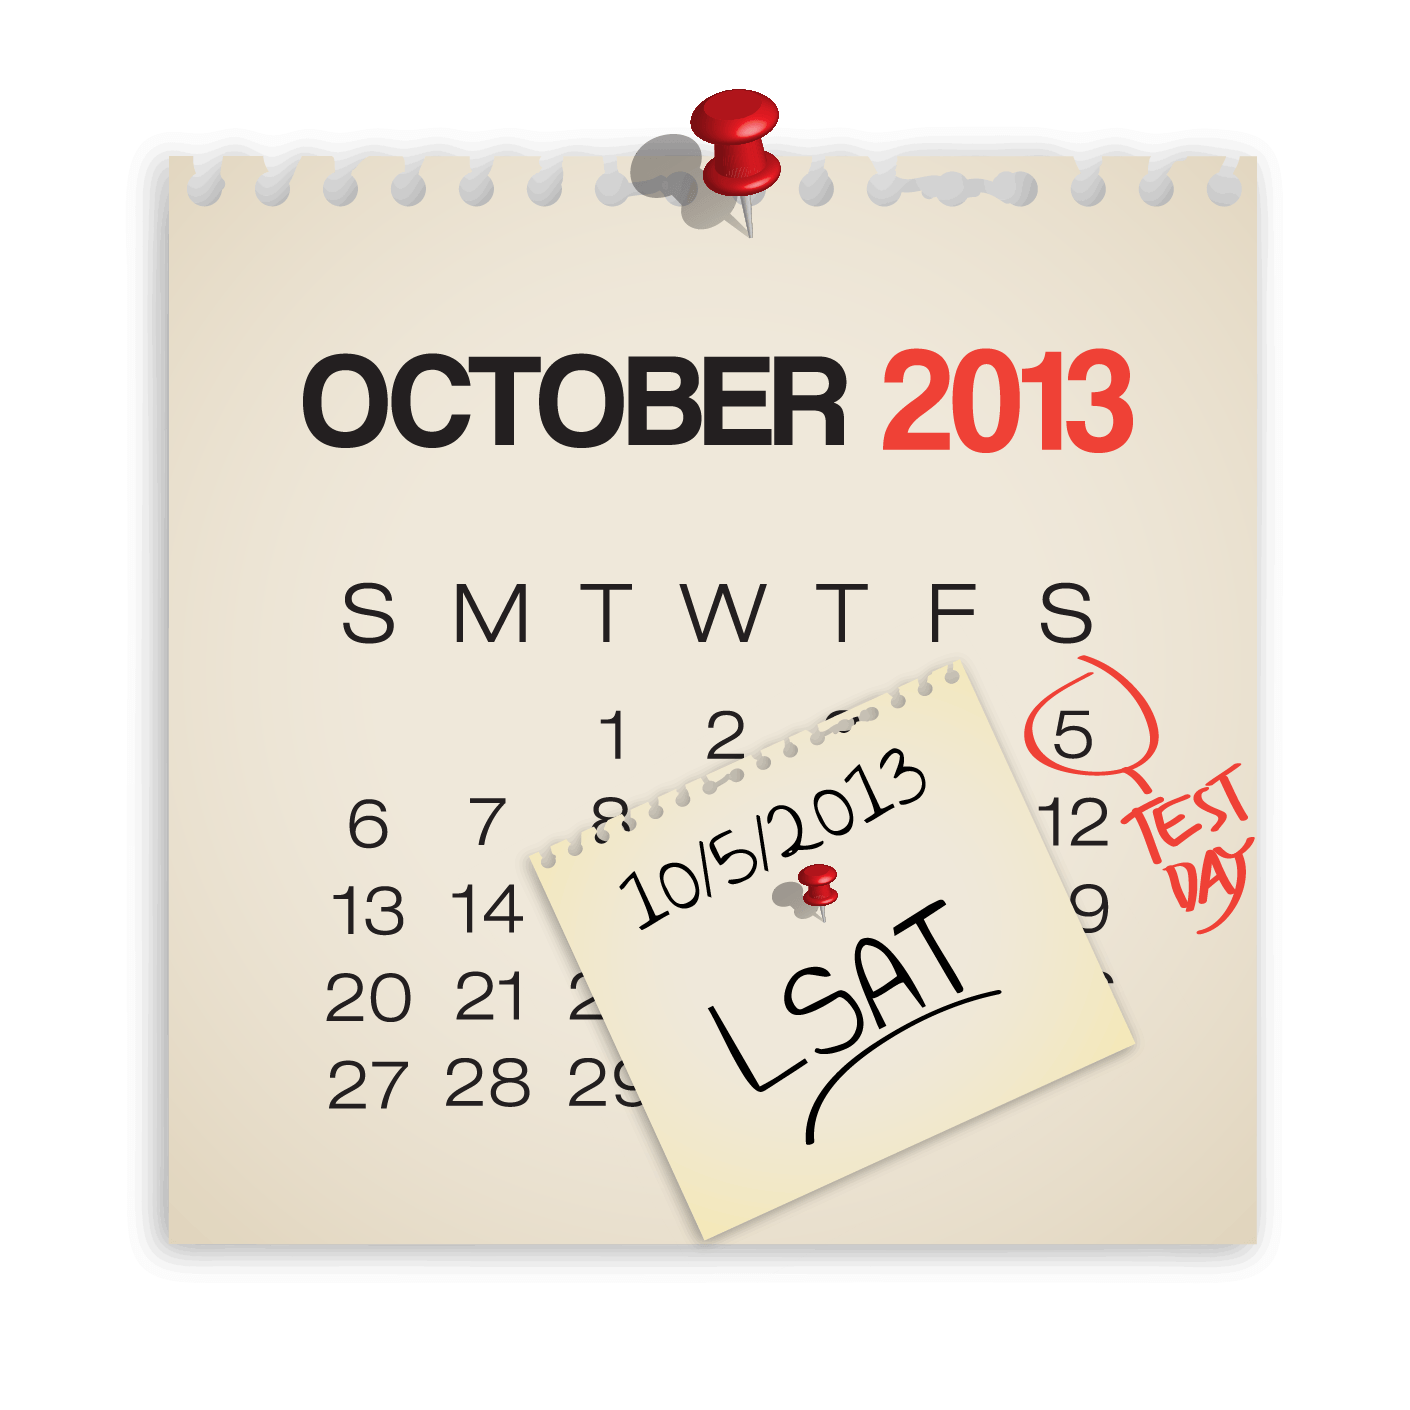 October lsat scores released today 10282013 vent here lawschooli october lsat scores released today 10282013 vent here malvernweather Choice Image